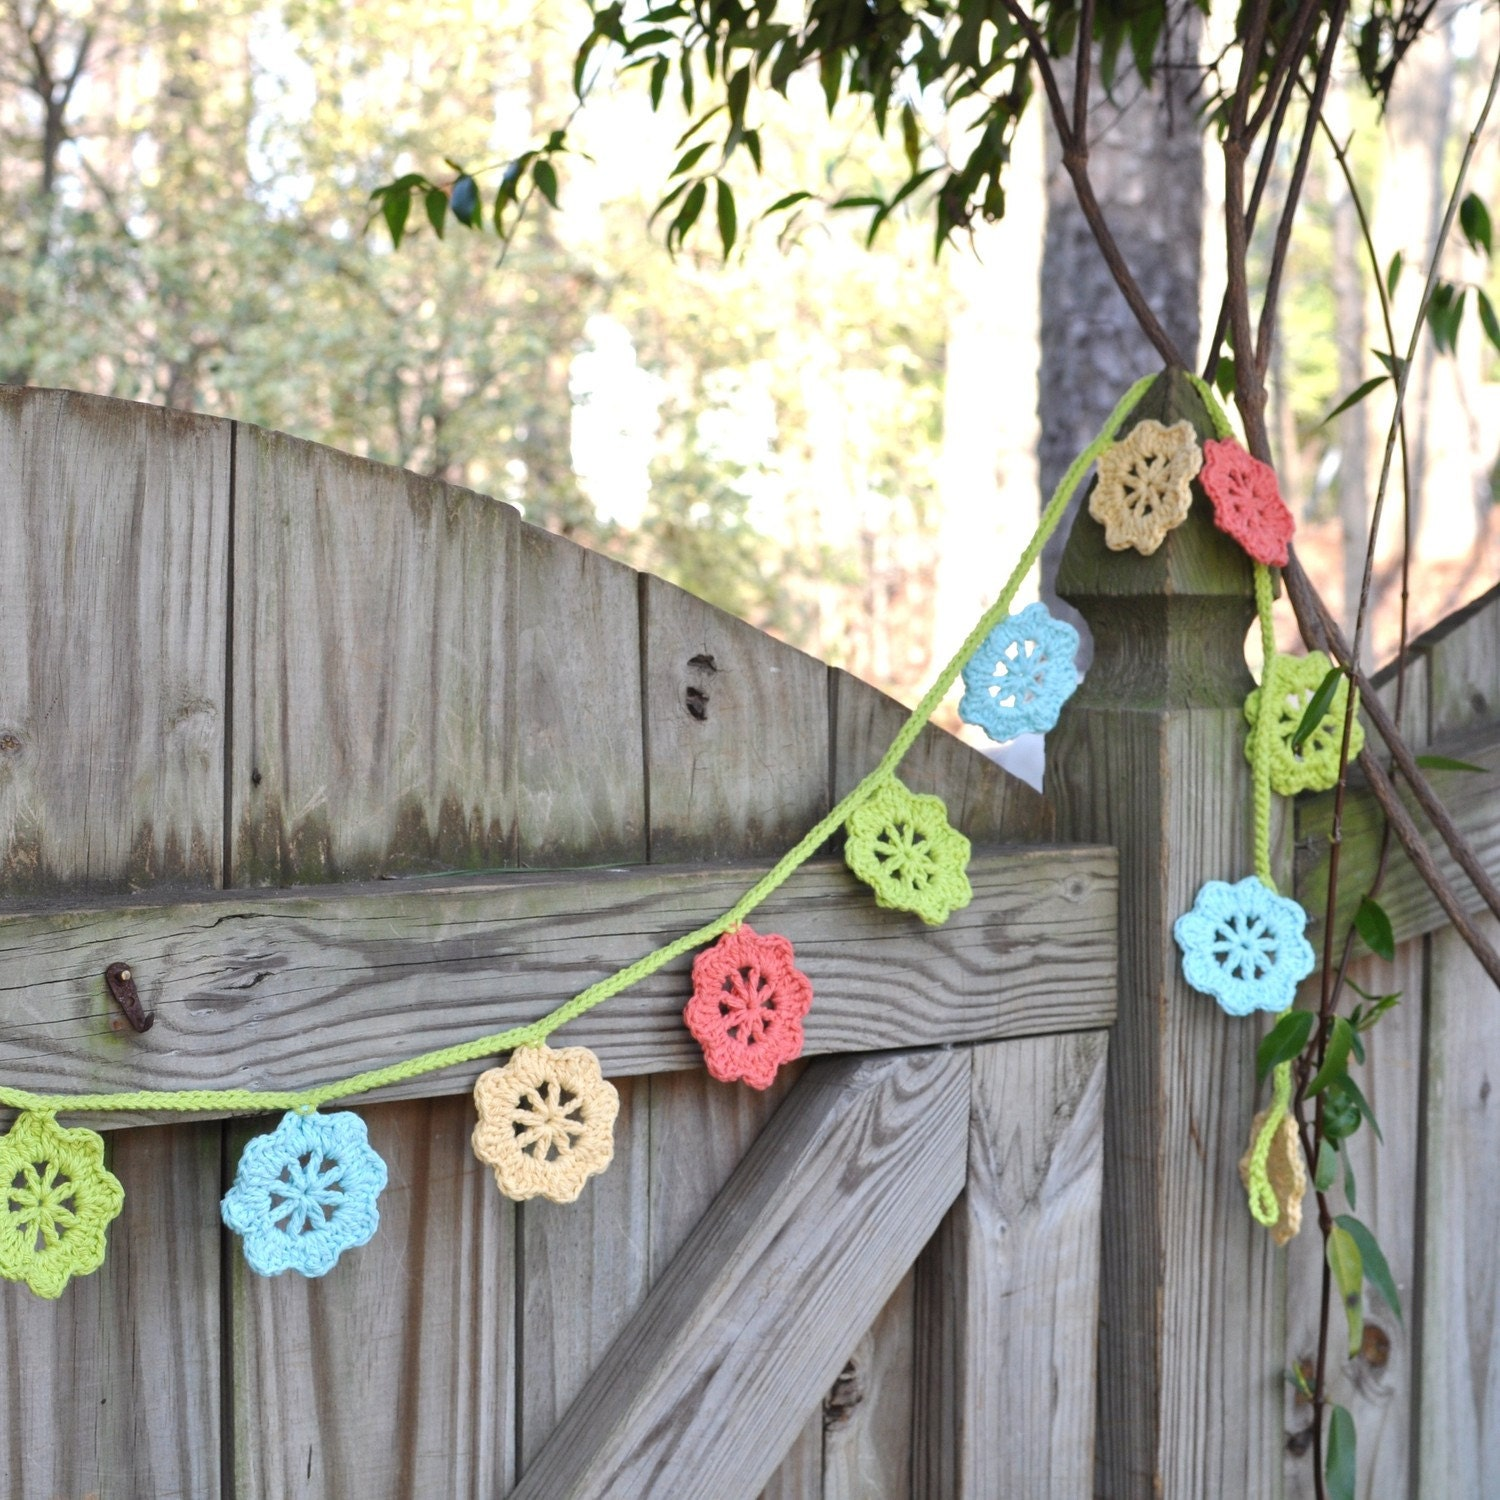 Shades of Spring - Crocheted Garland - Colorful Decoration